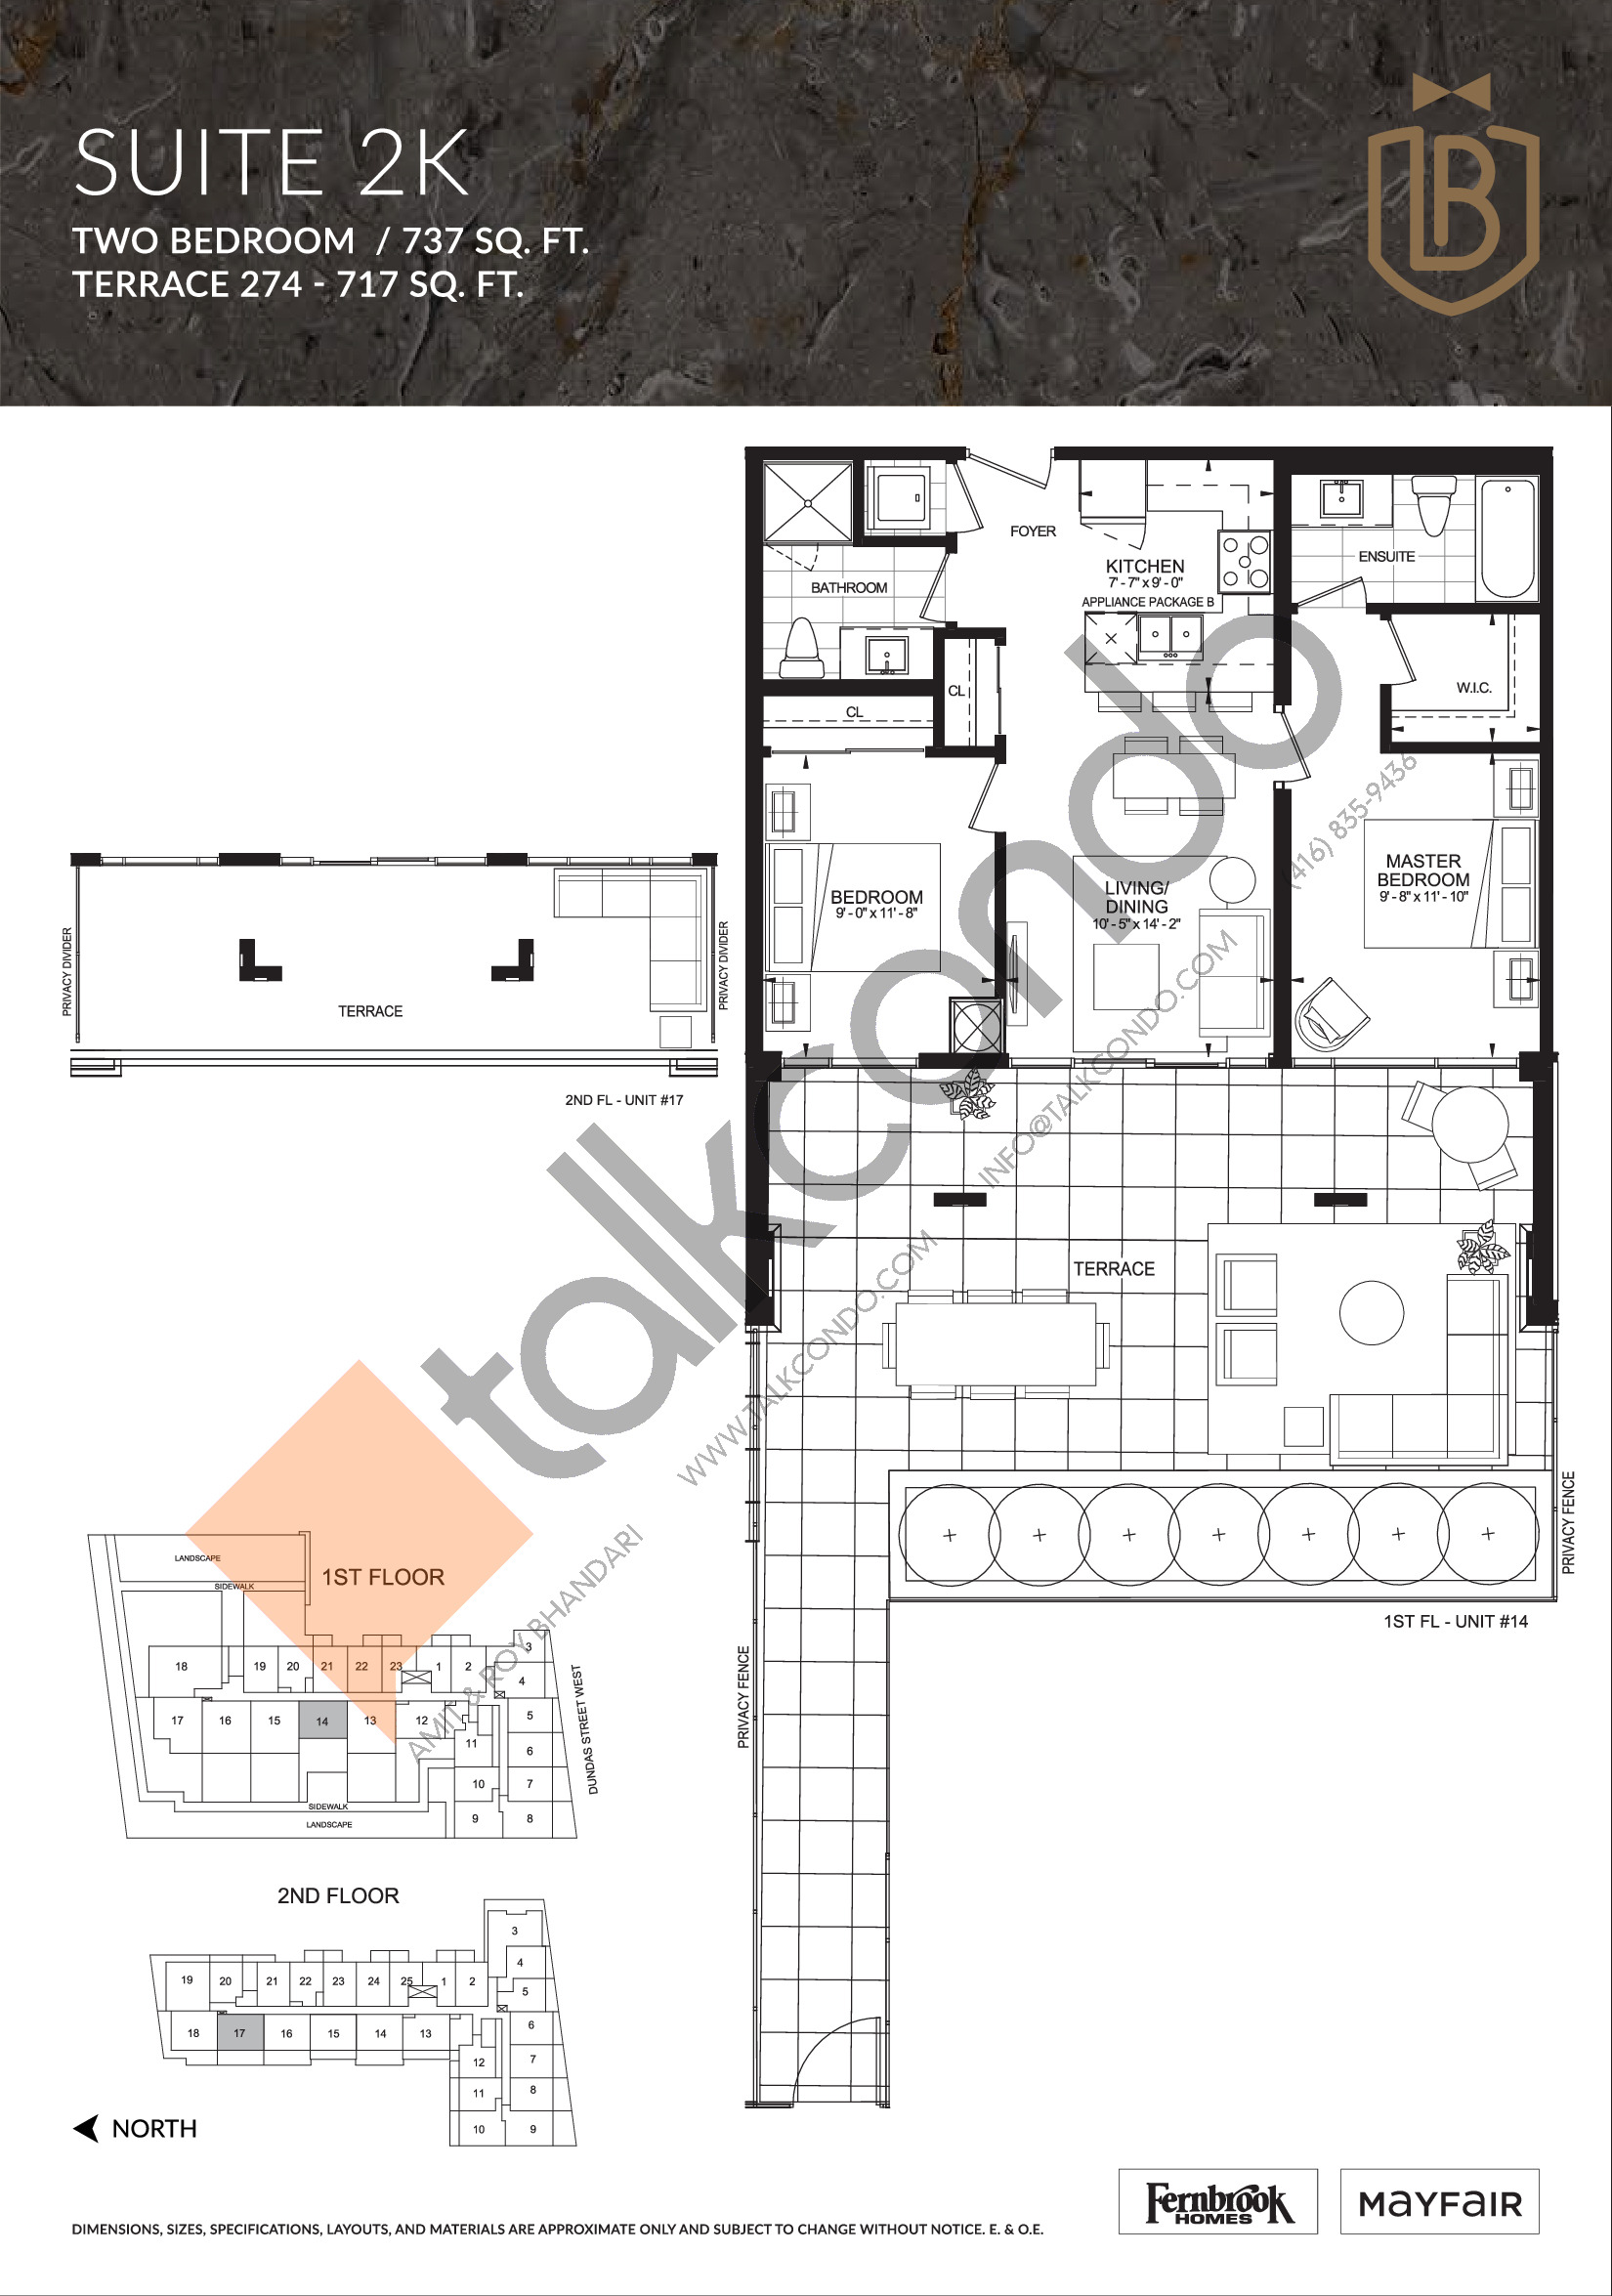 Suite 2K (Terrace) Floor Plan at The Butler Condos - 737 sq.ft